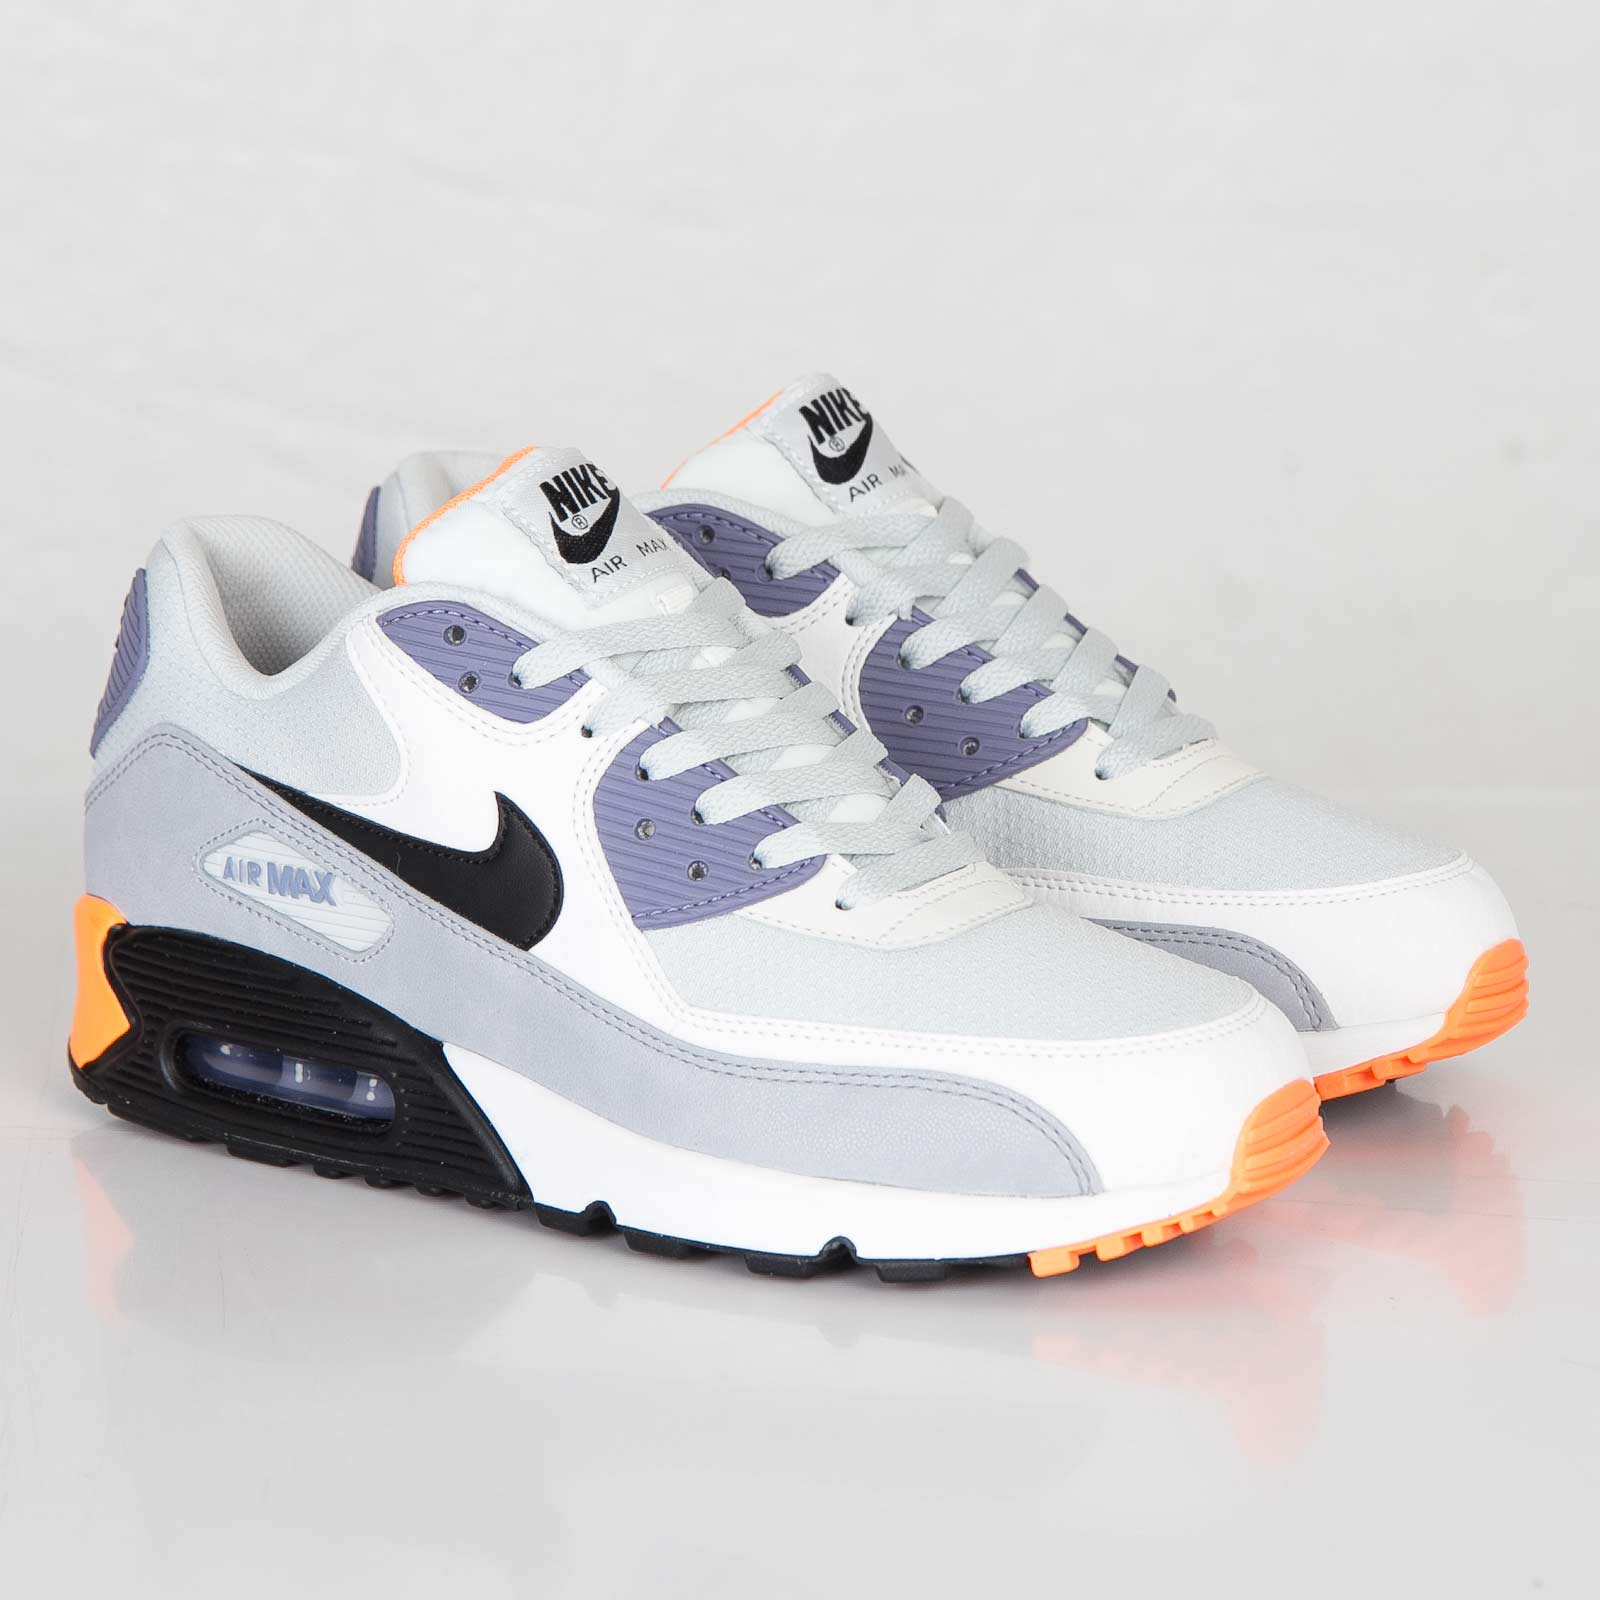 reputable site 48178 f9b09 Nike Air Max 90 Essential